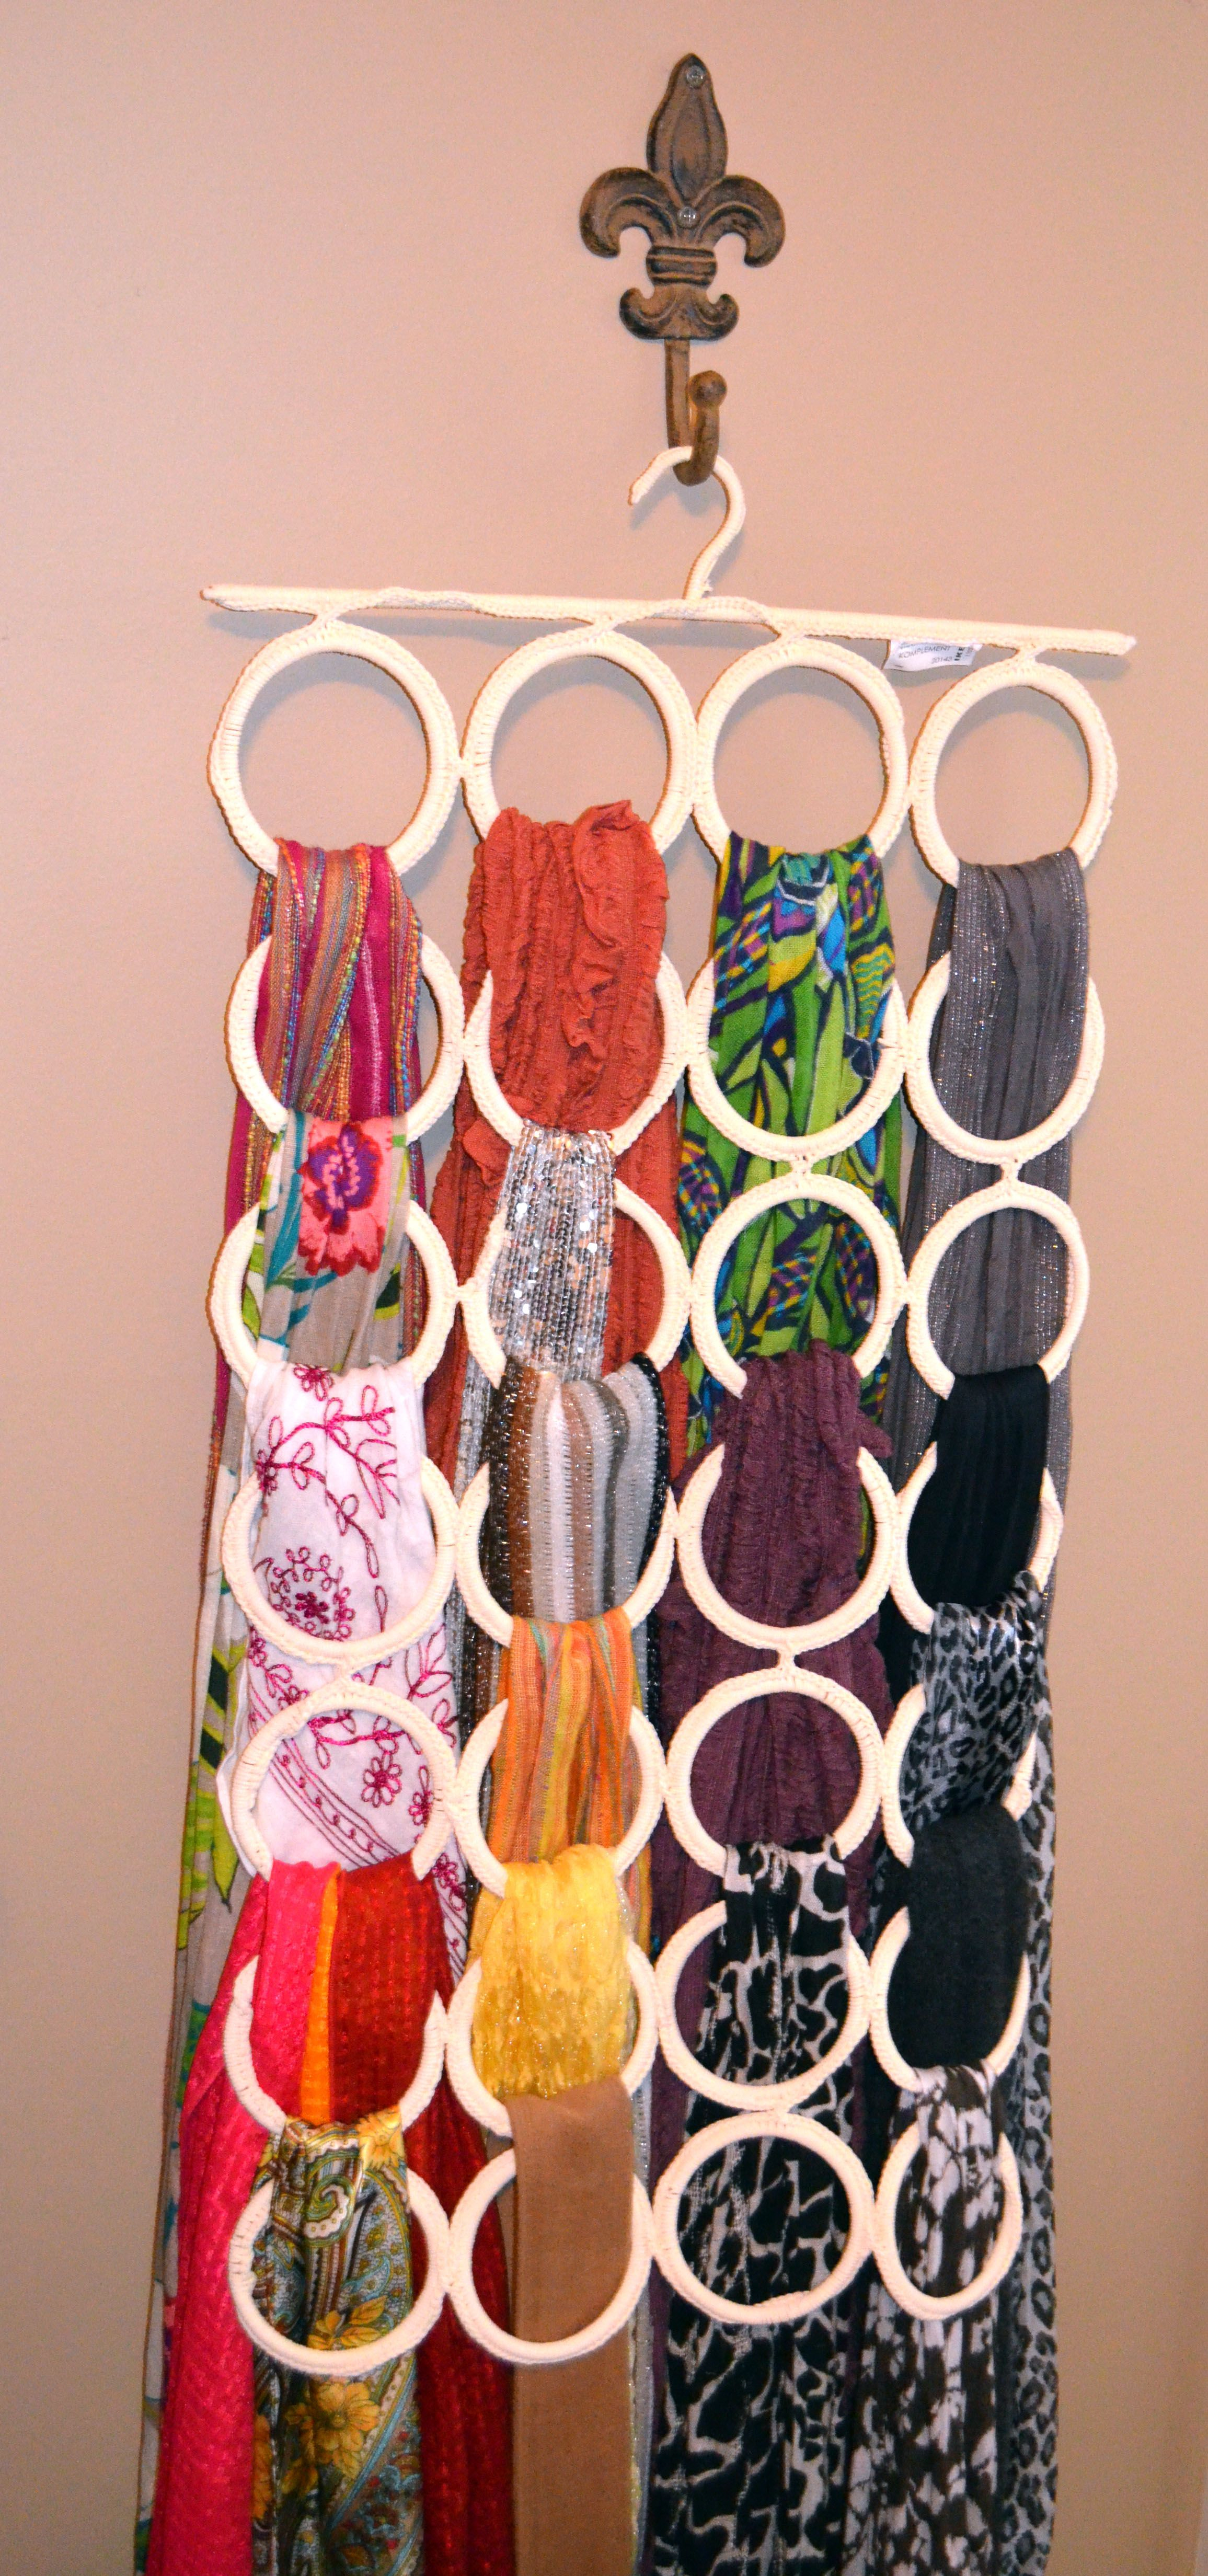 Crochet Mural Ikea Scarf Hanger The Hanging Loop Thing I Found At Ikea And I Use It